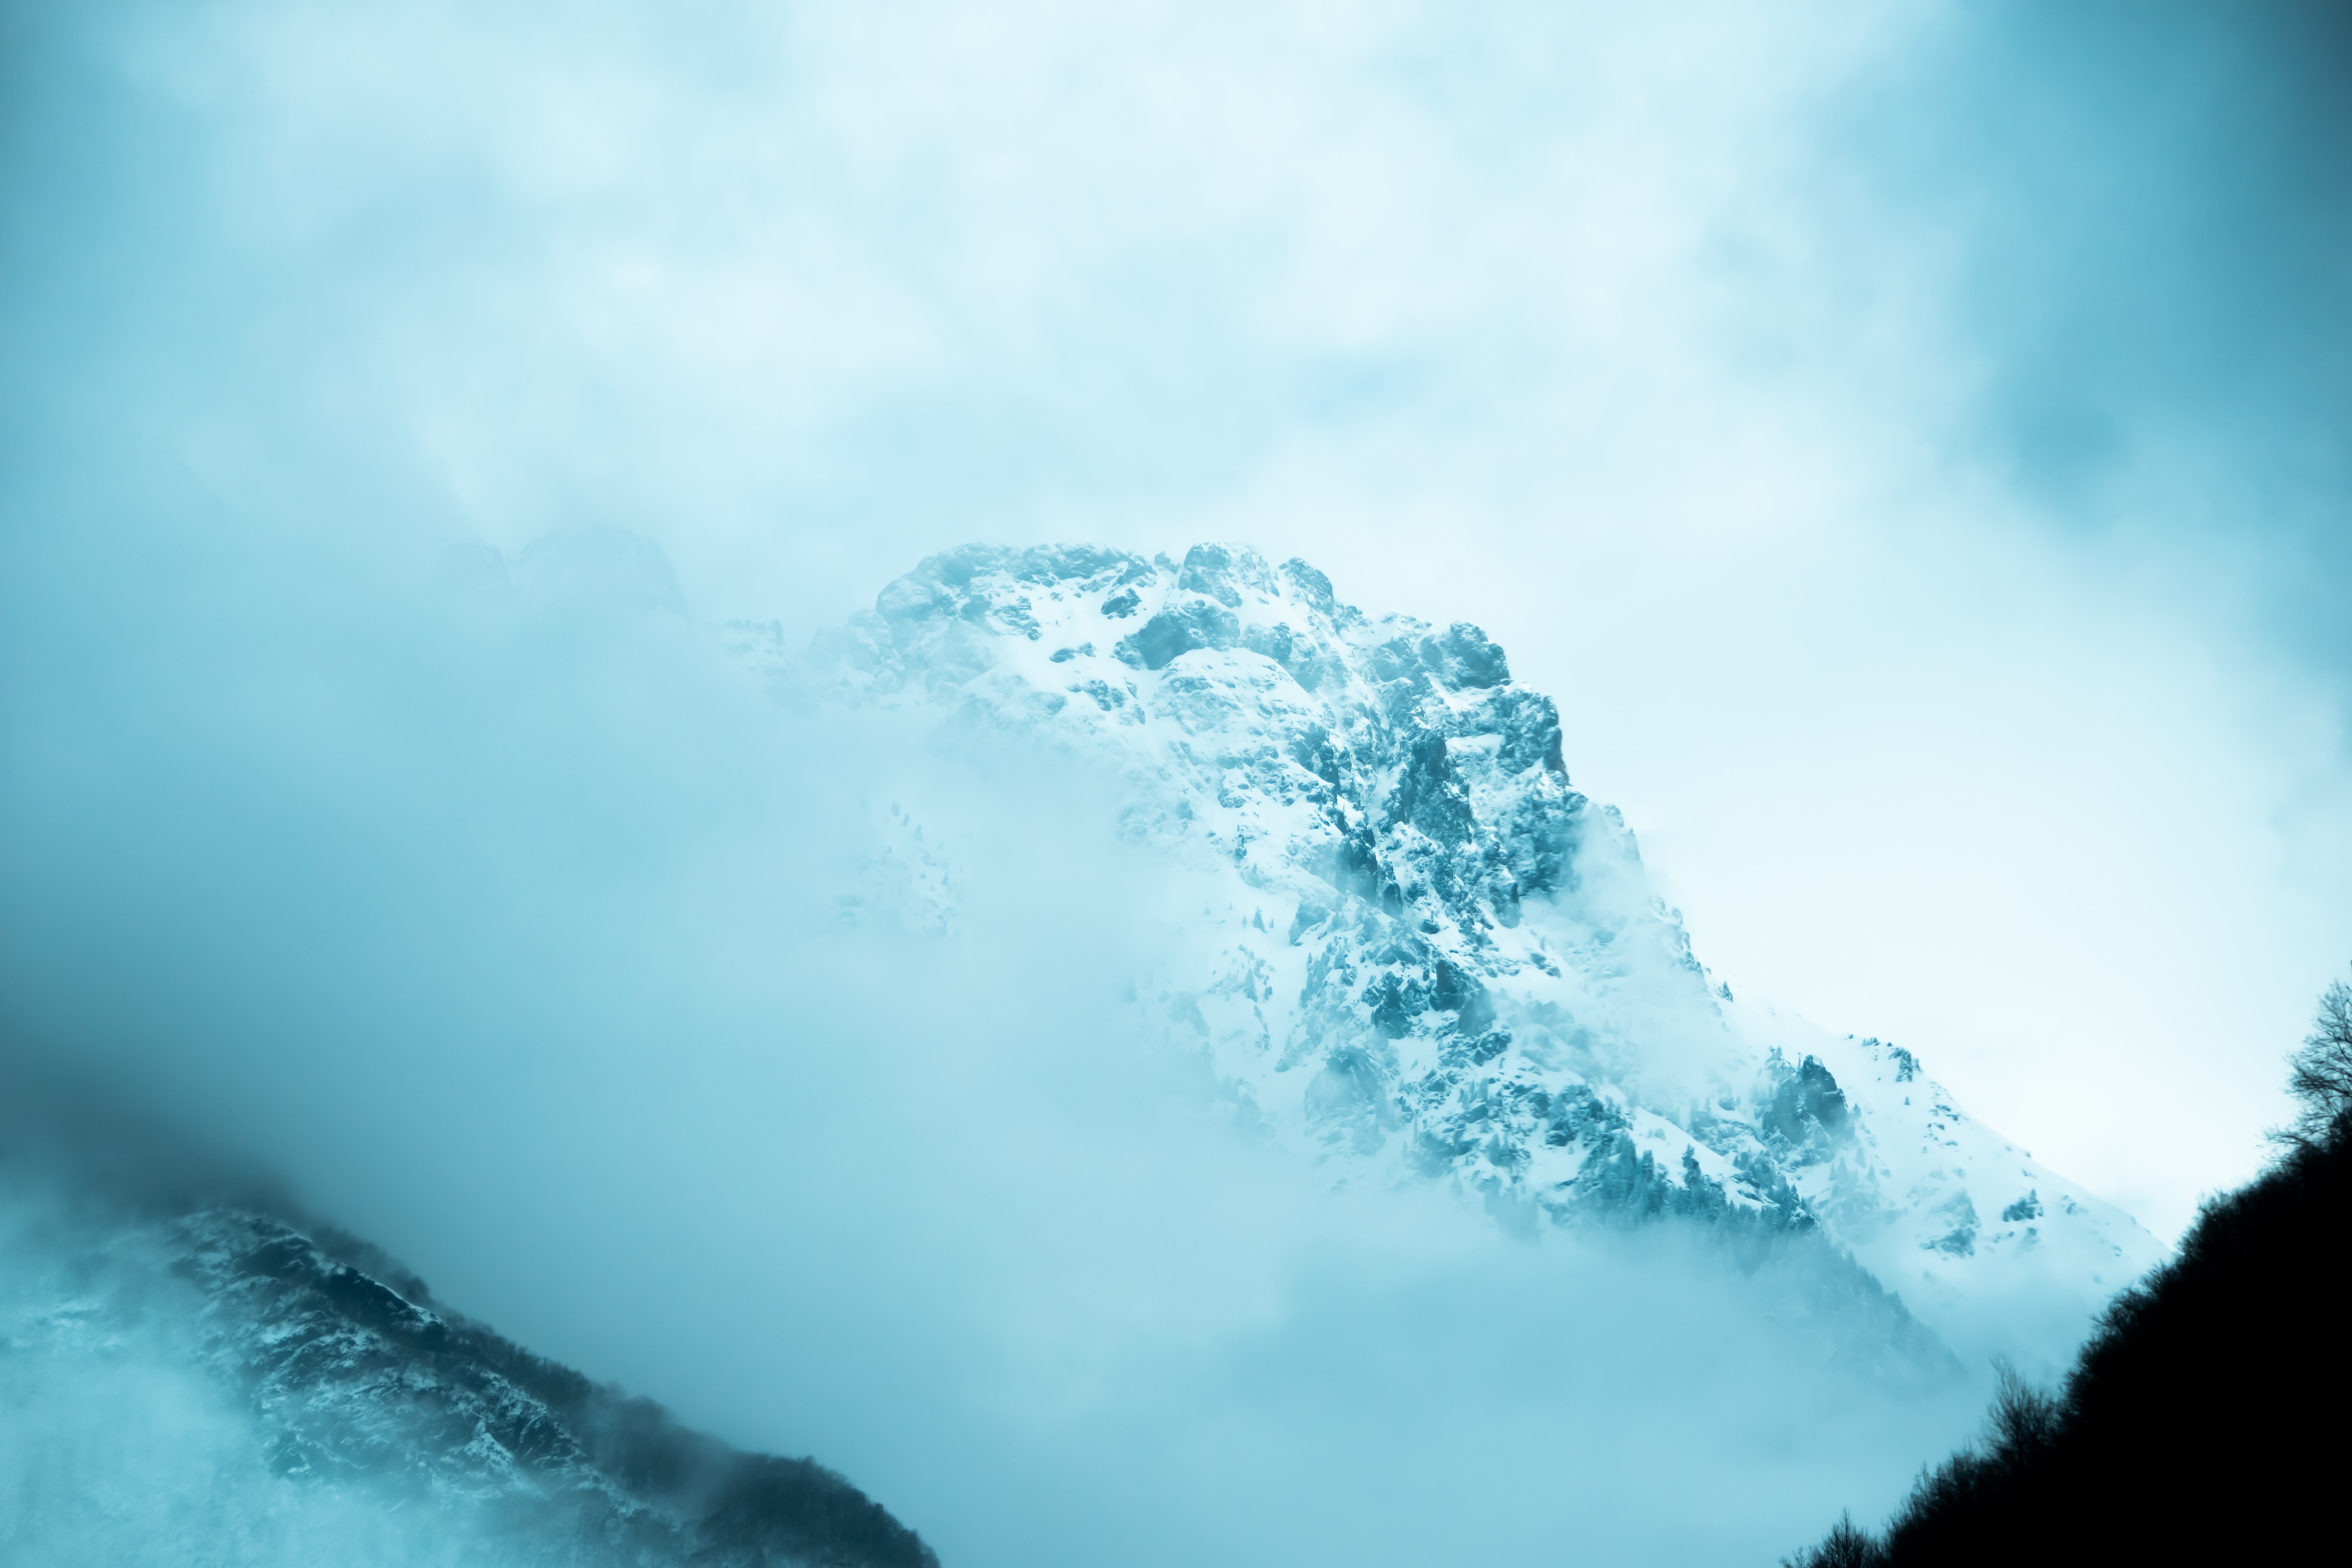 landscape photography of snow-capped mountain covered with fog